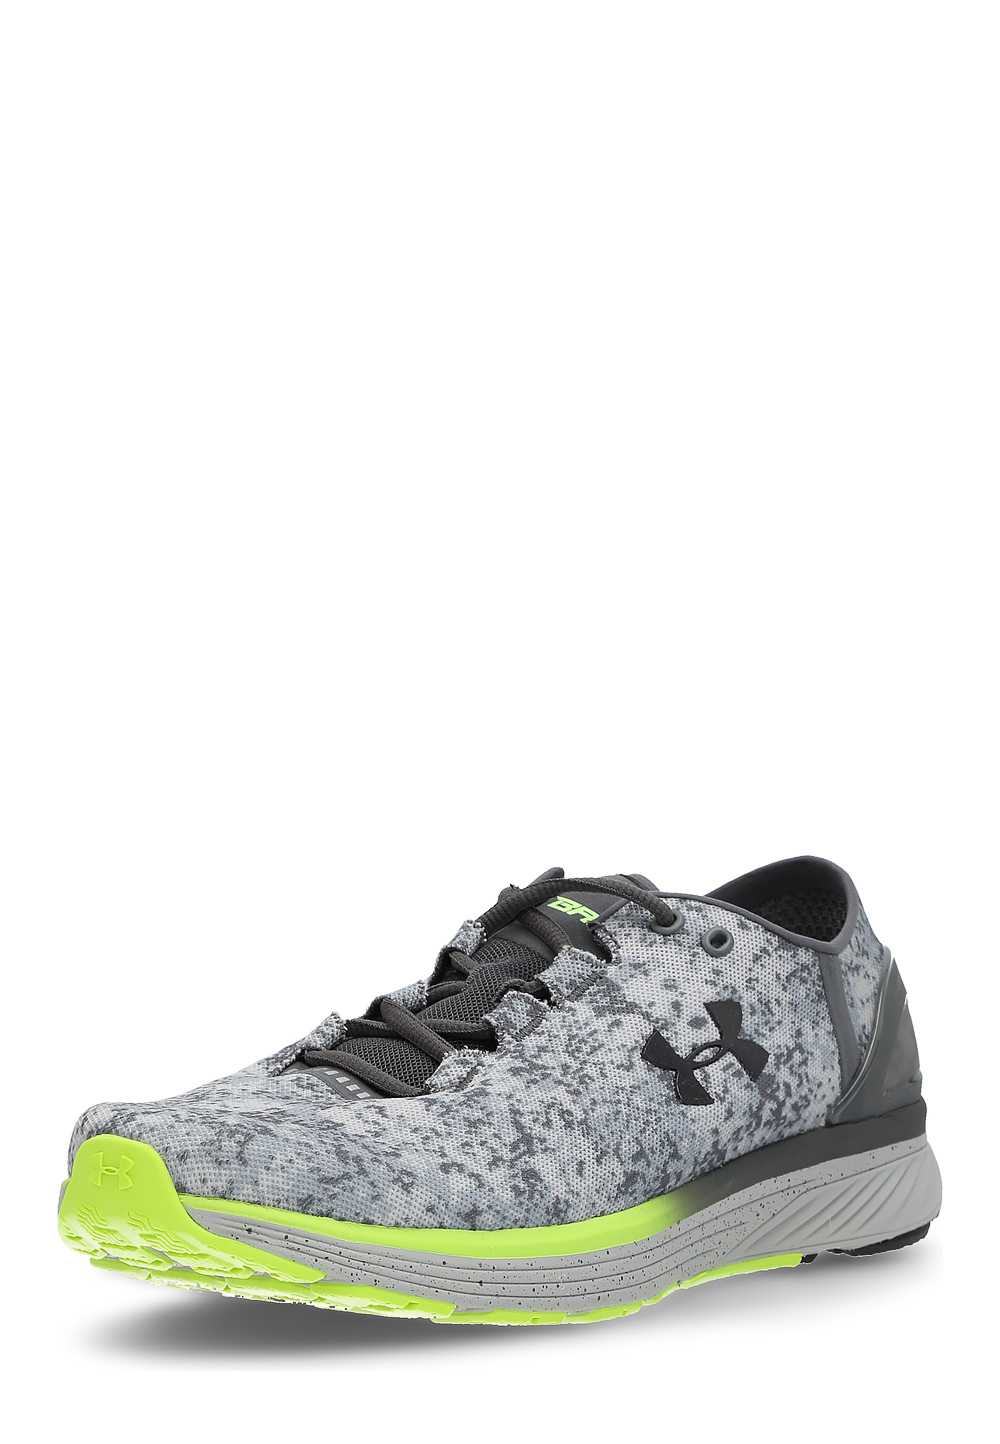 Under Armour Laufschuhe Charged Bandit 3 Digi, grau/neongelb | Schuhe | Grau | Under Armour